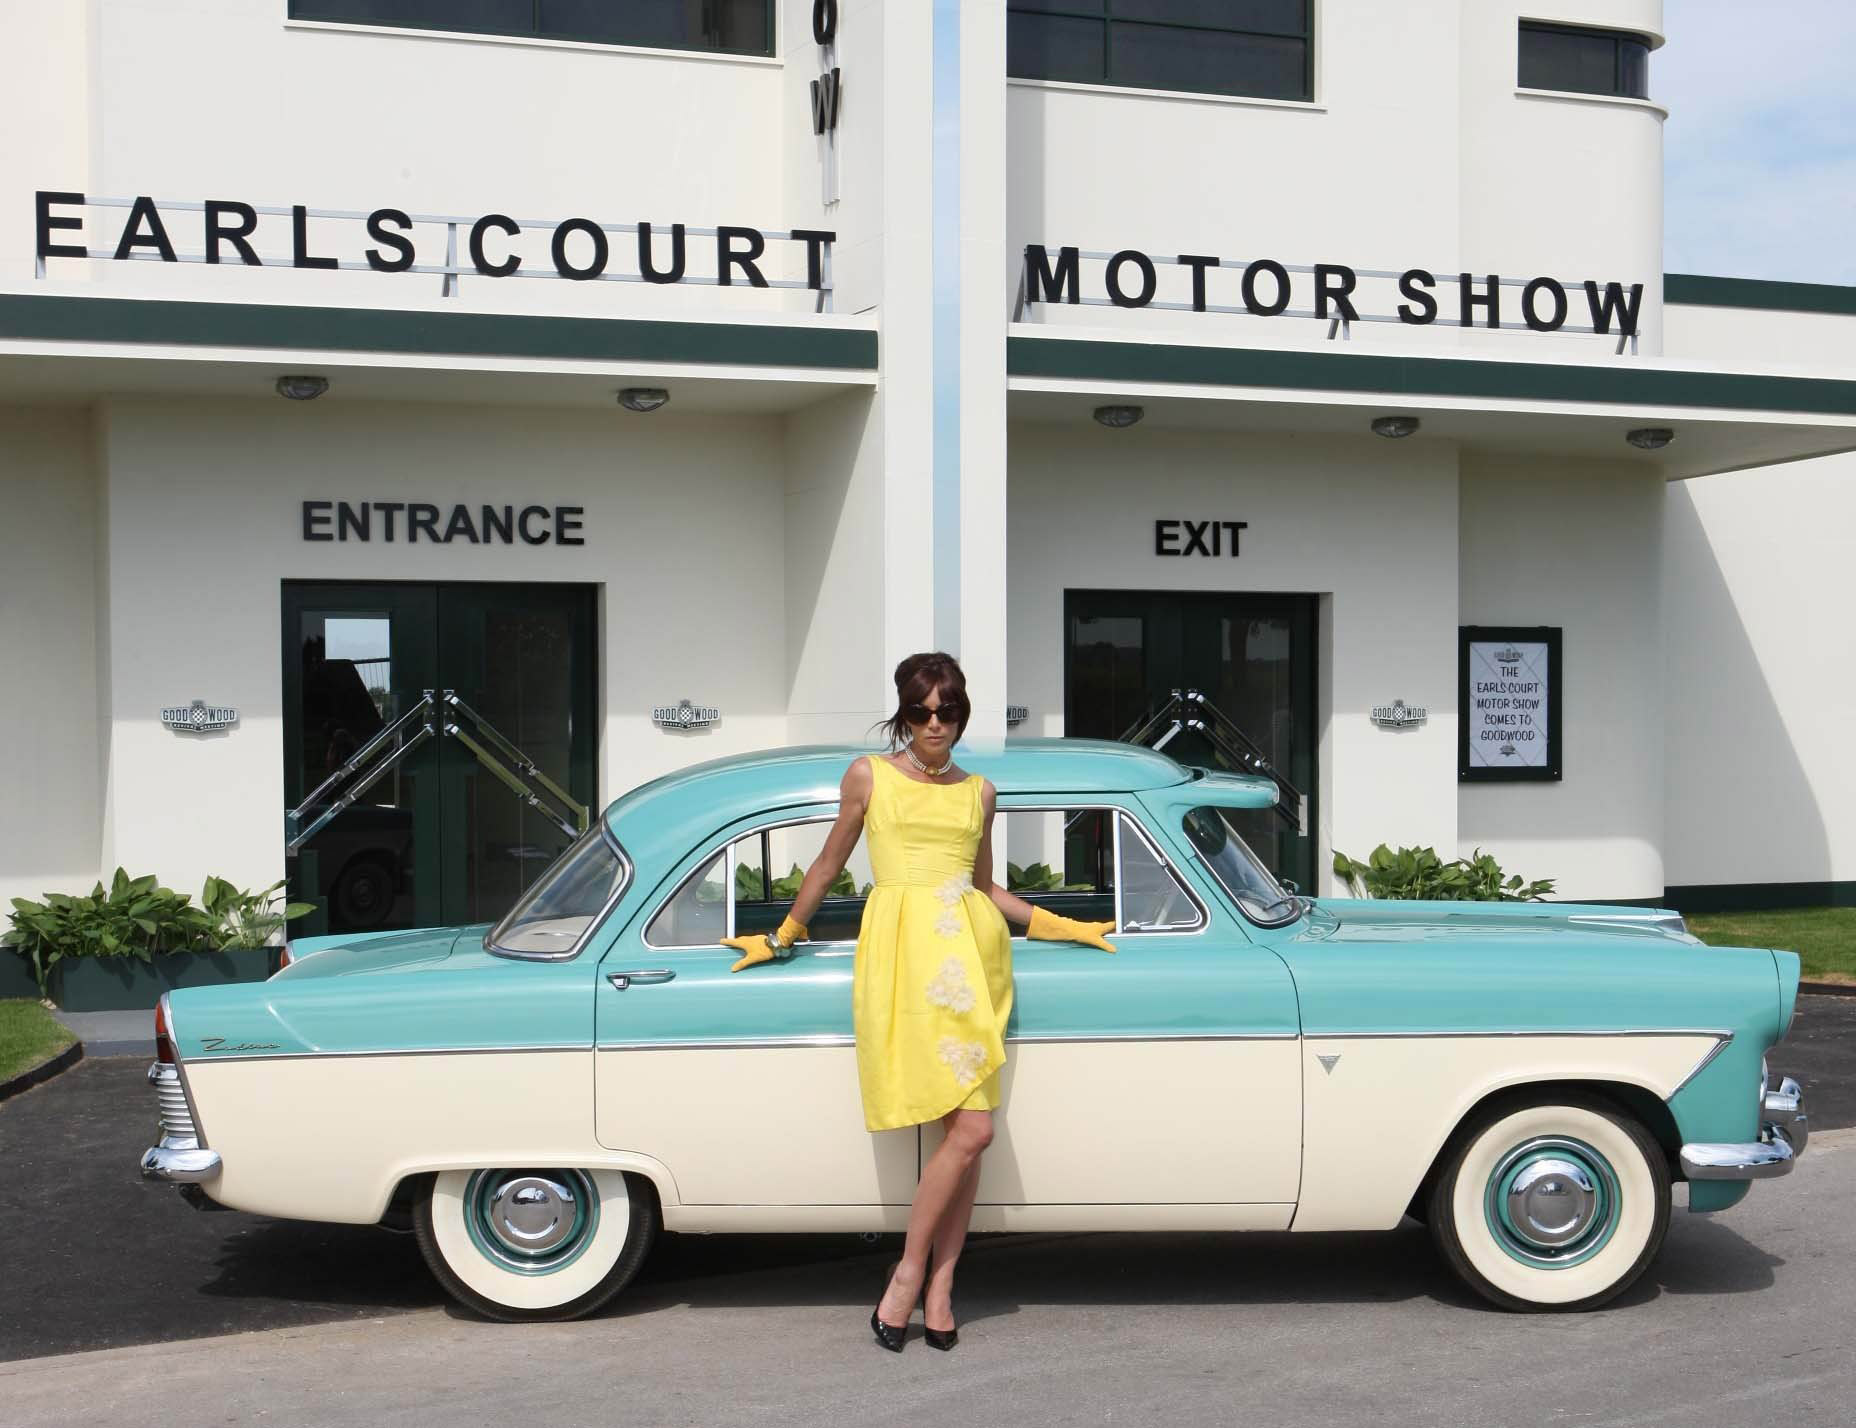 Goodwood alternative motor show & Goodwood announces an alternative motor show at the revival as earls ...